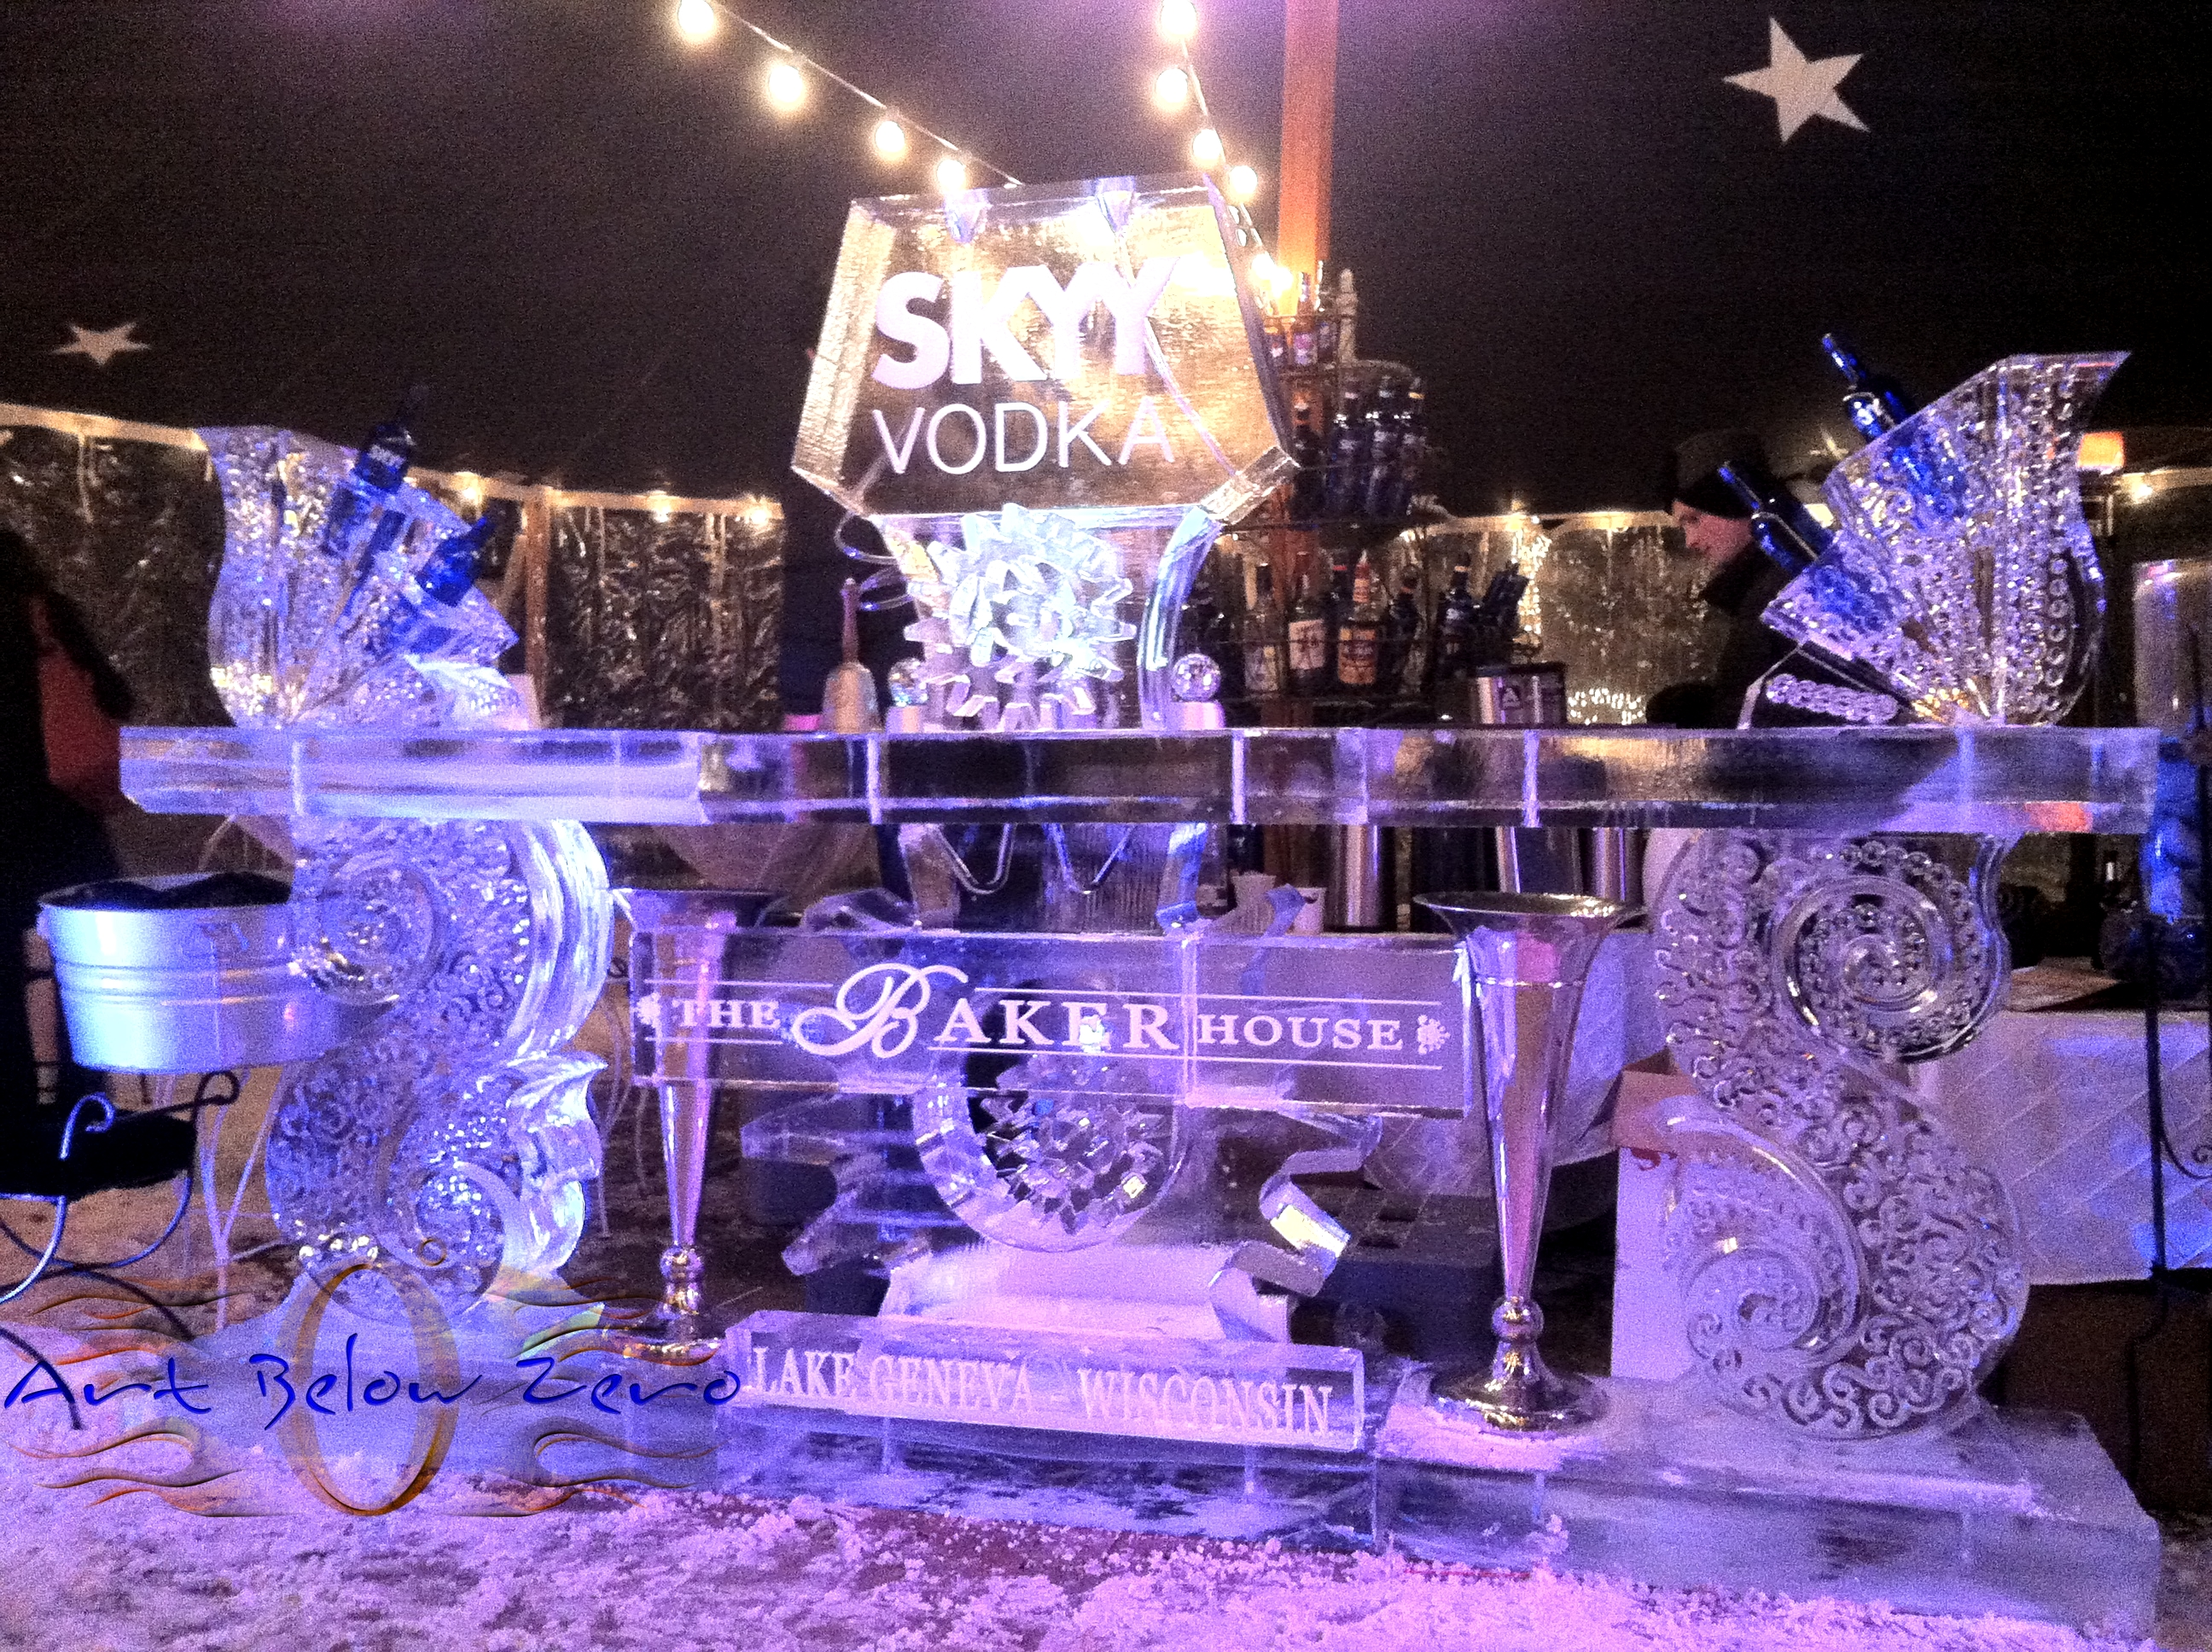 The Baker House and Skyy vodka Ice Bar